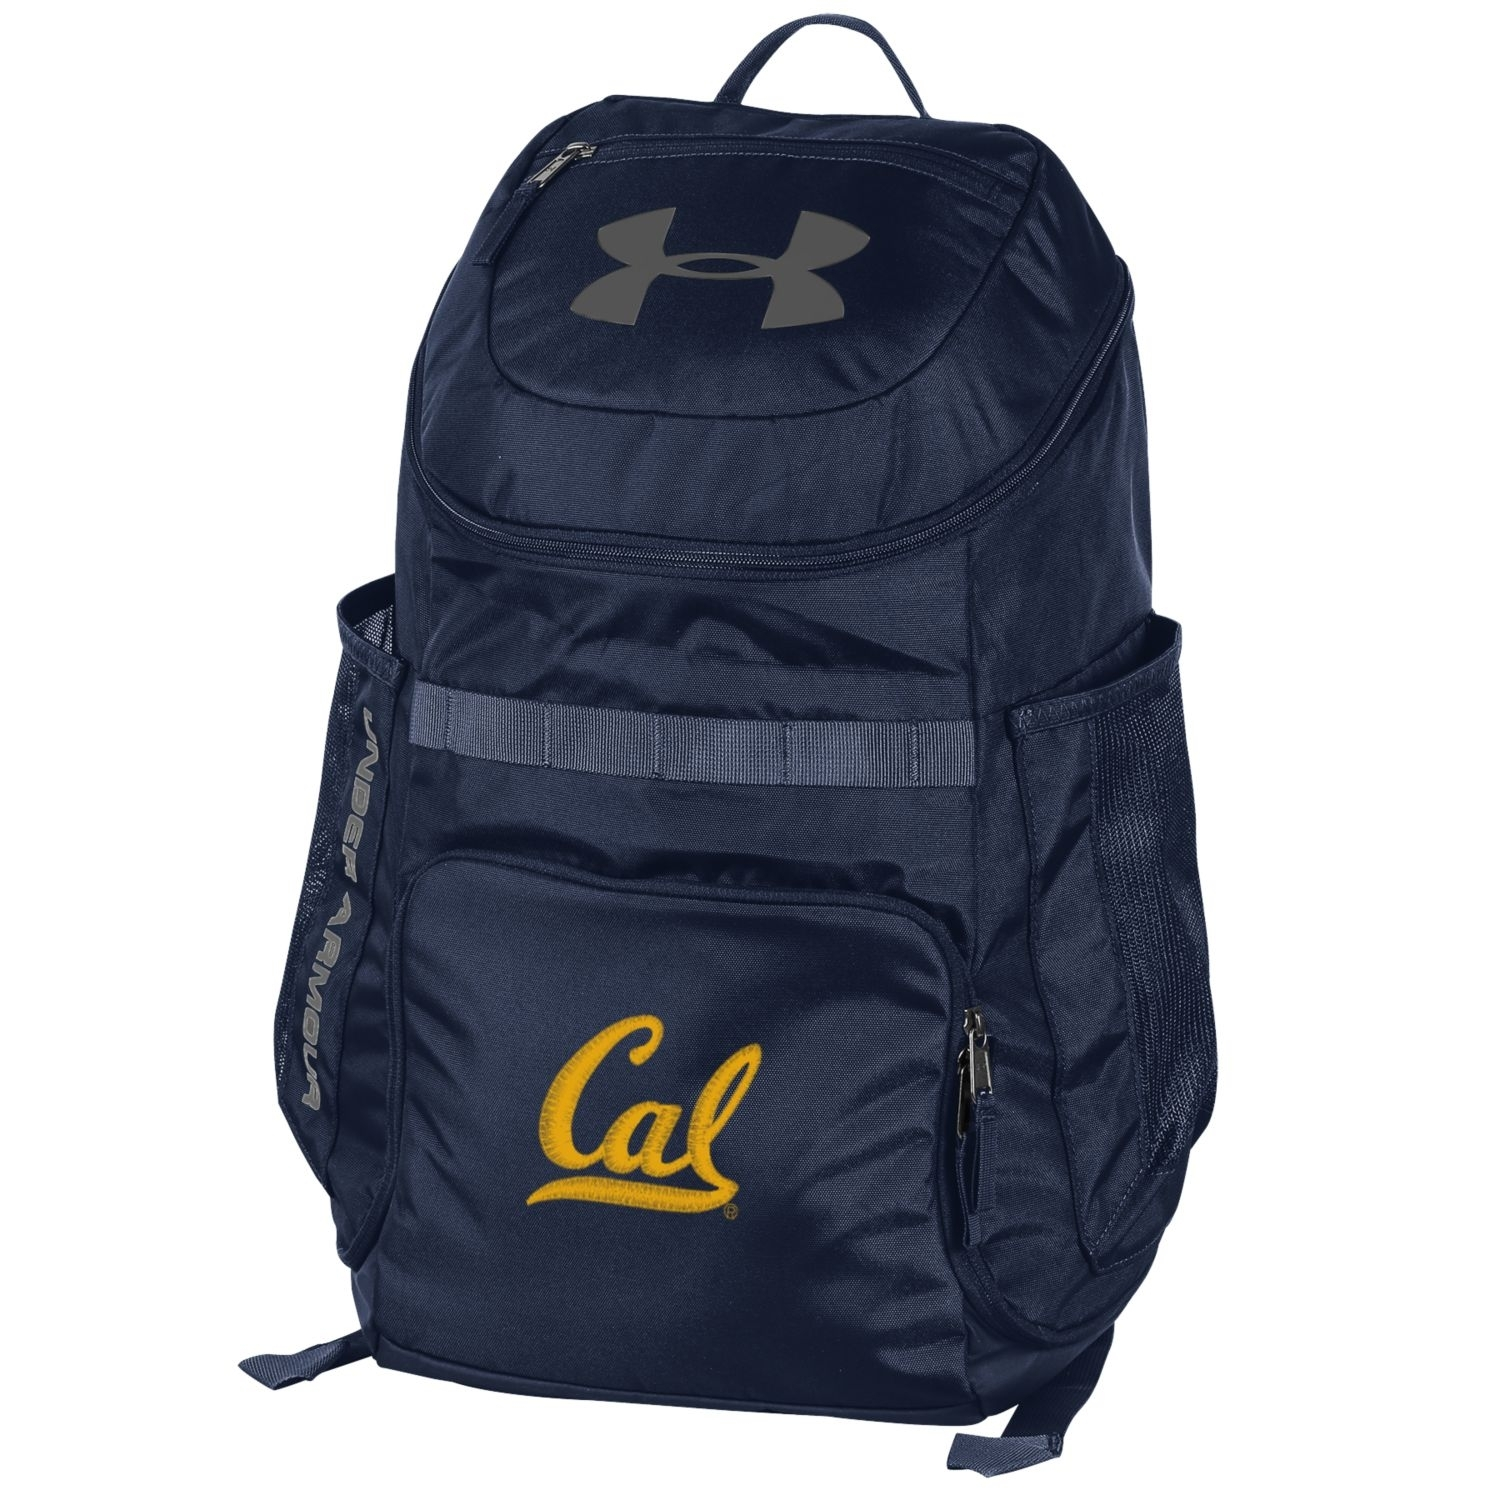 Detailed image of Undeniable Backpack Cal Logo